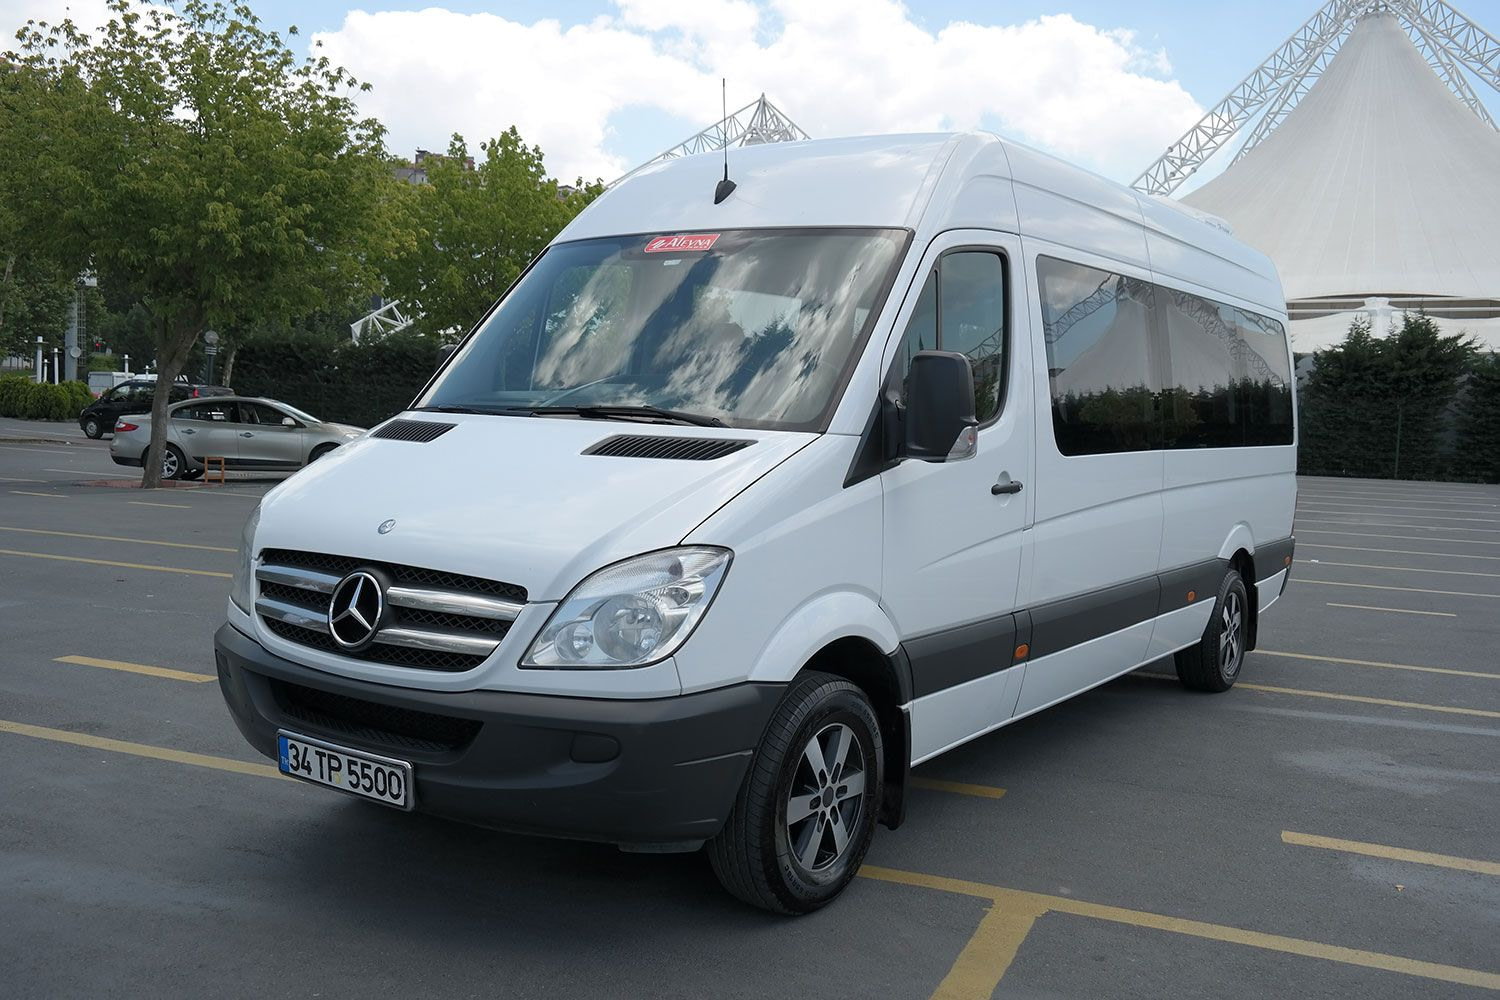 big_9_mercedes-07-2 Benz Sprinter with guide-driver